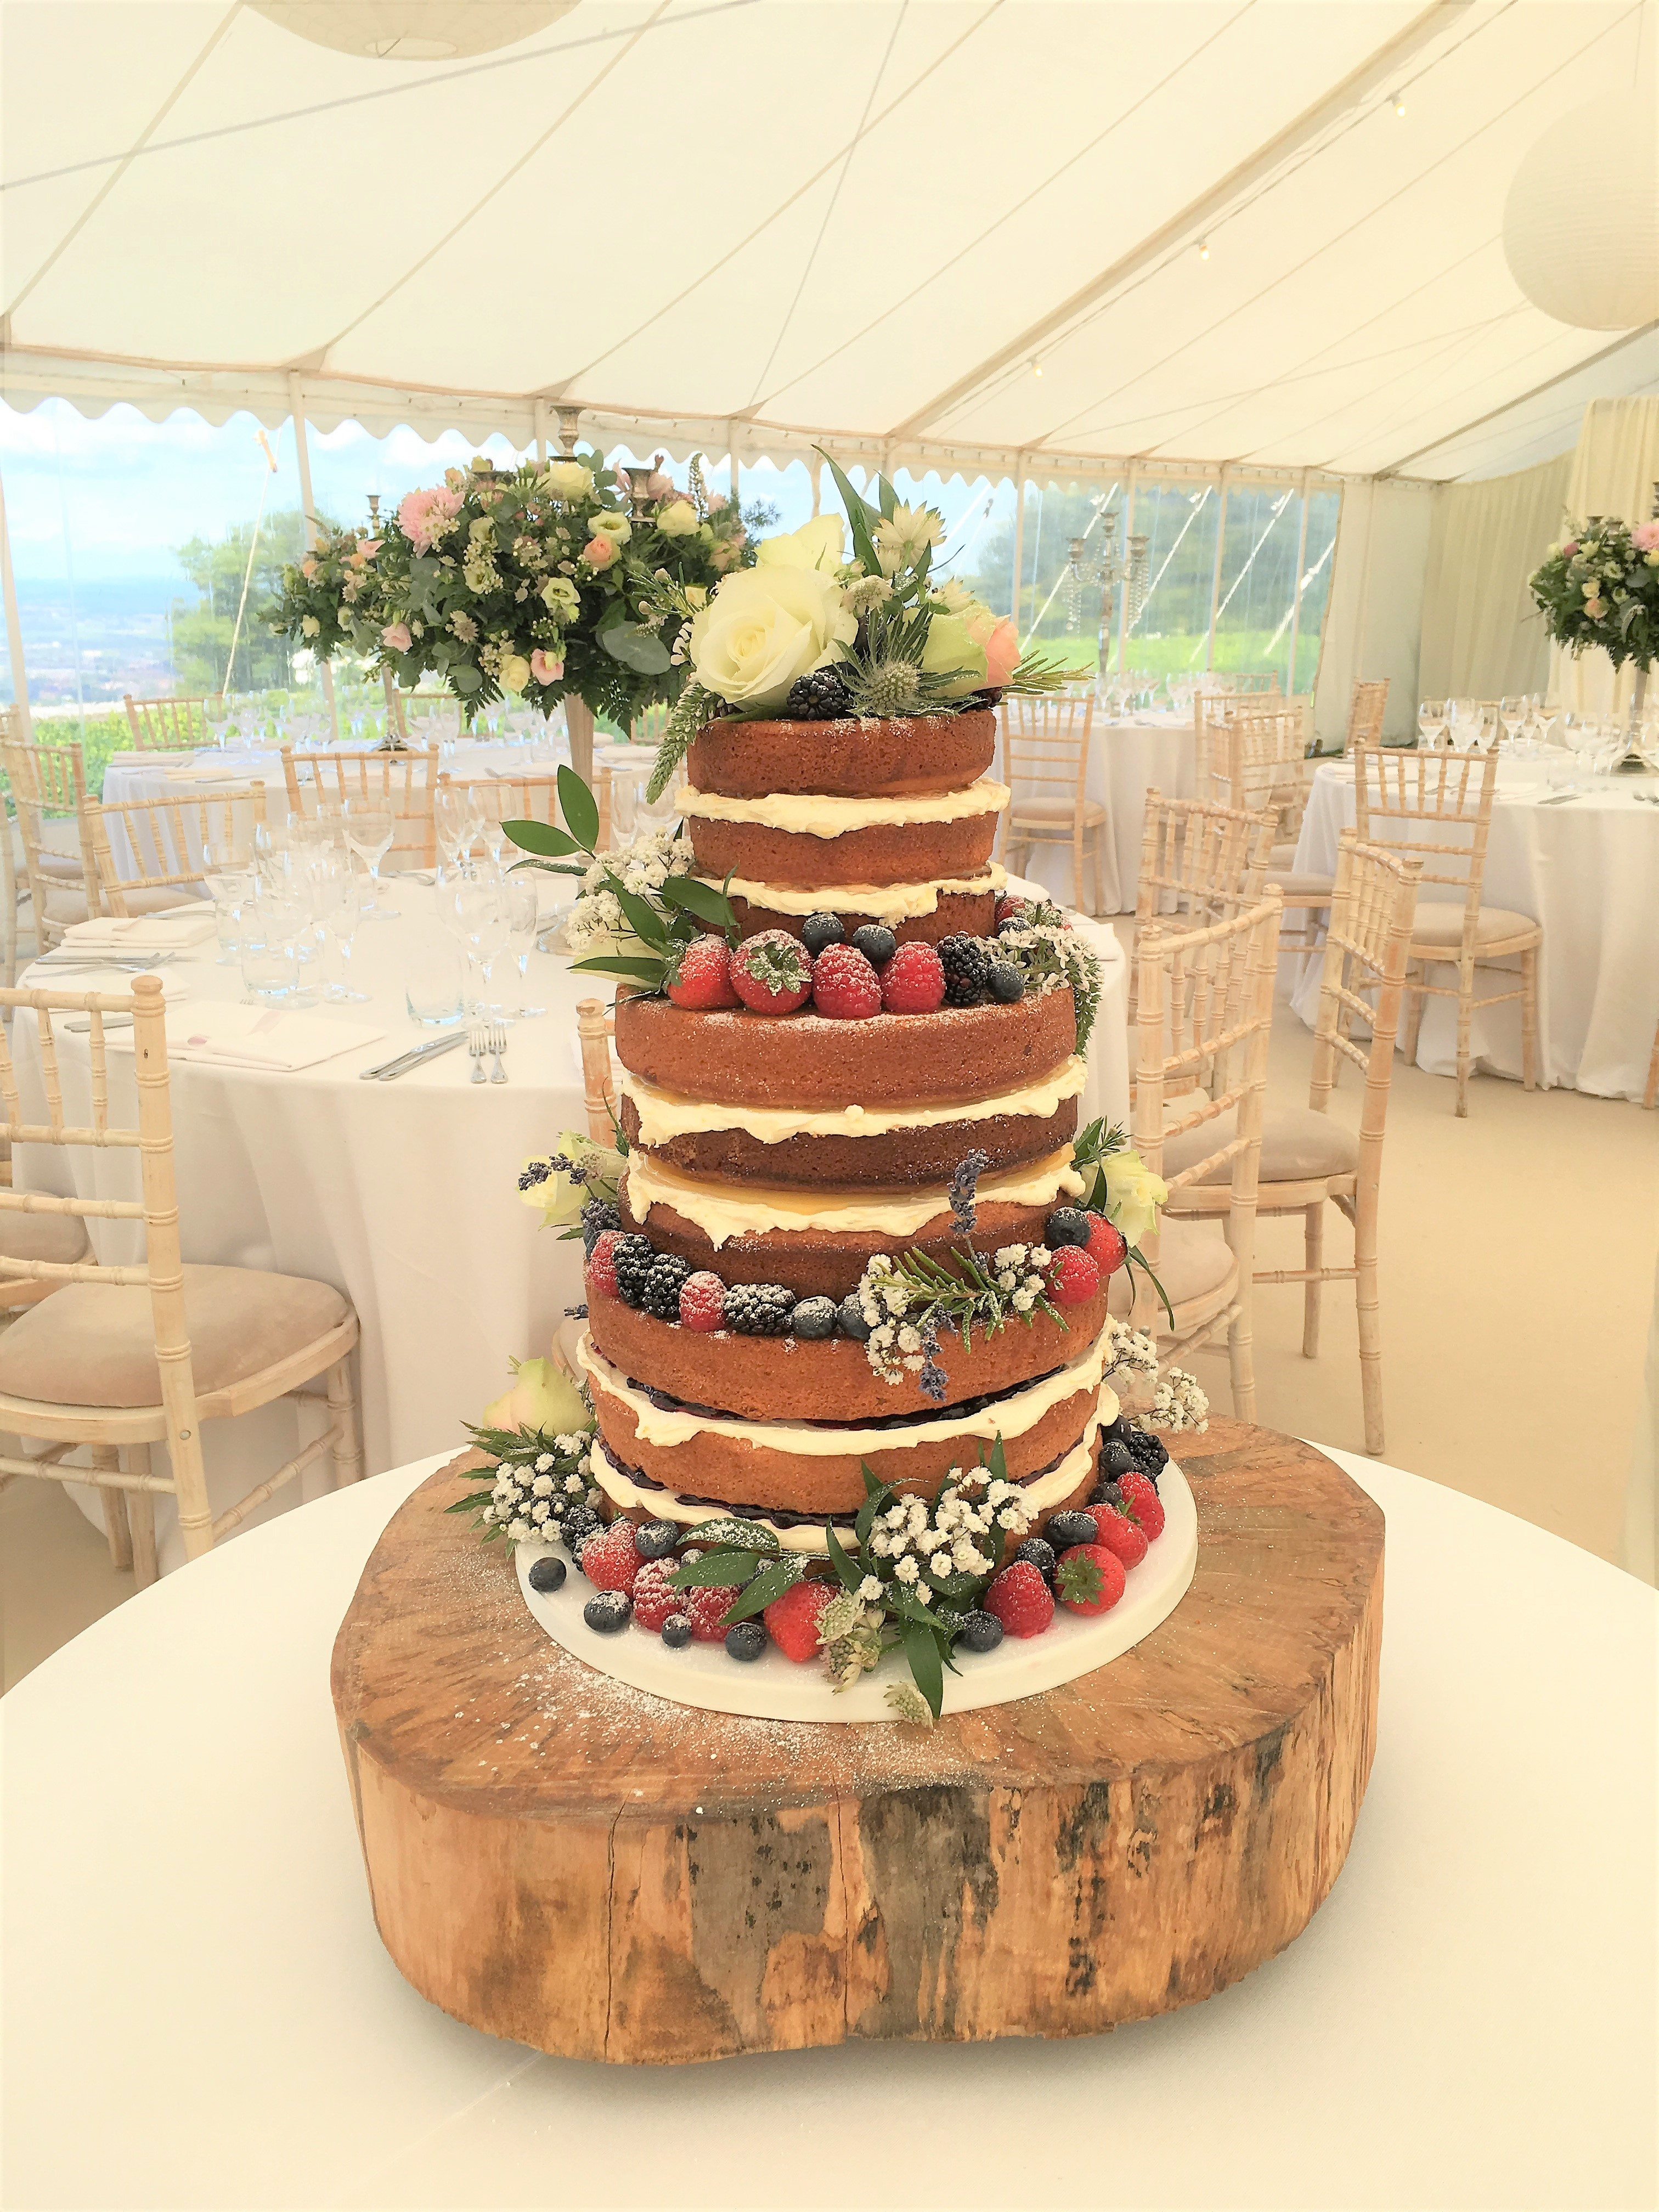 The Naked Cake Hannah Hickman Cakes